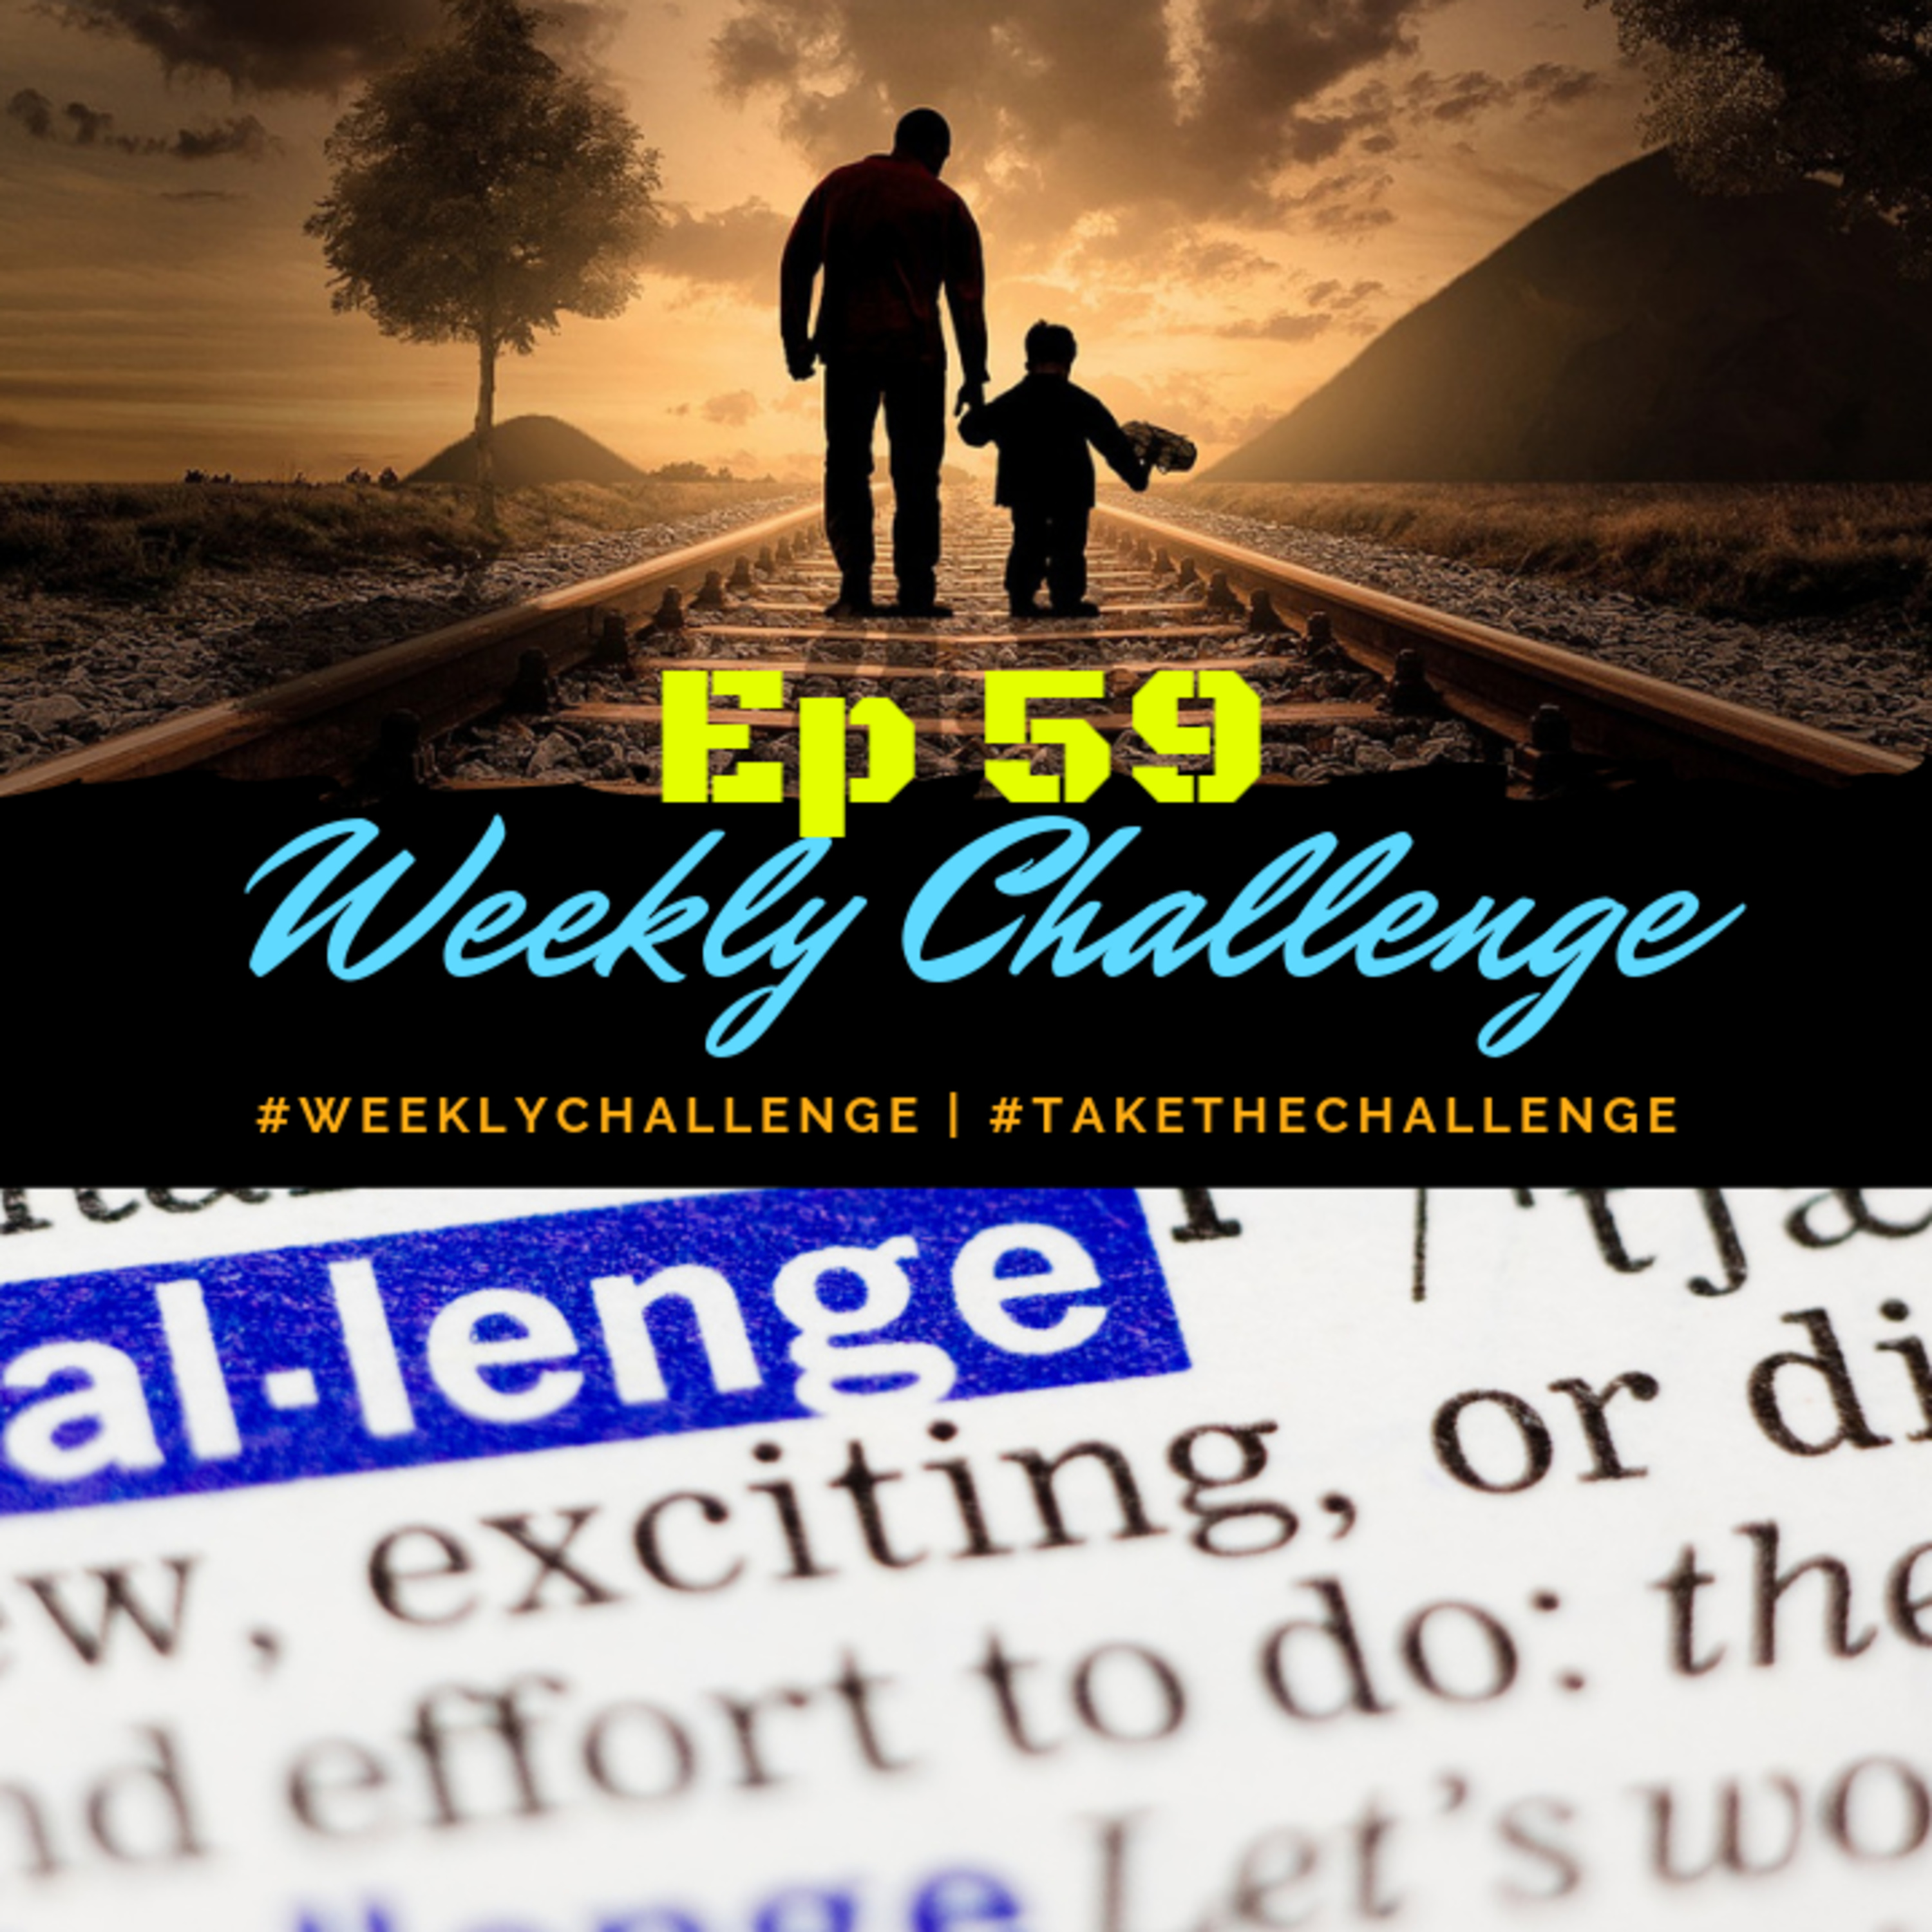 Find More Quiet Time | Weekly Challenge From Ep 59 With Kate Frank